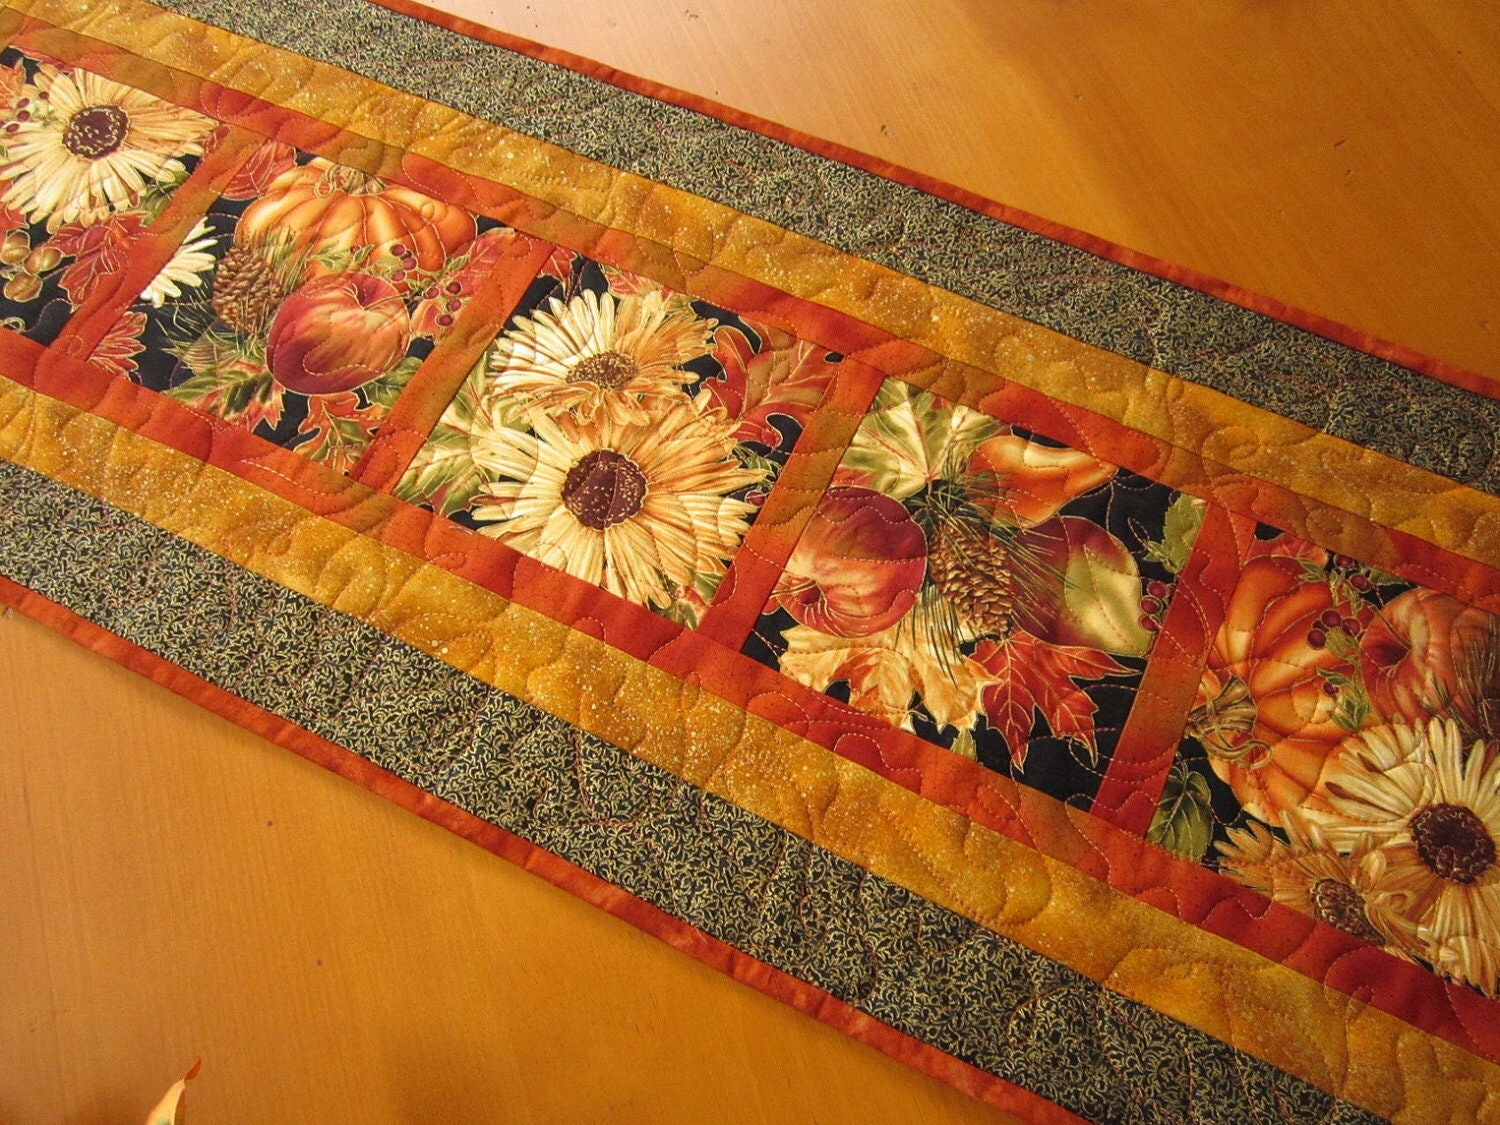 Thanksgiving Quilted Table Runner Patterns : Thanksgiving Table Runner Fall Harvest Quilted Table Runner